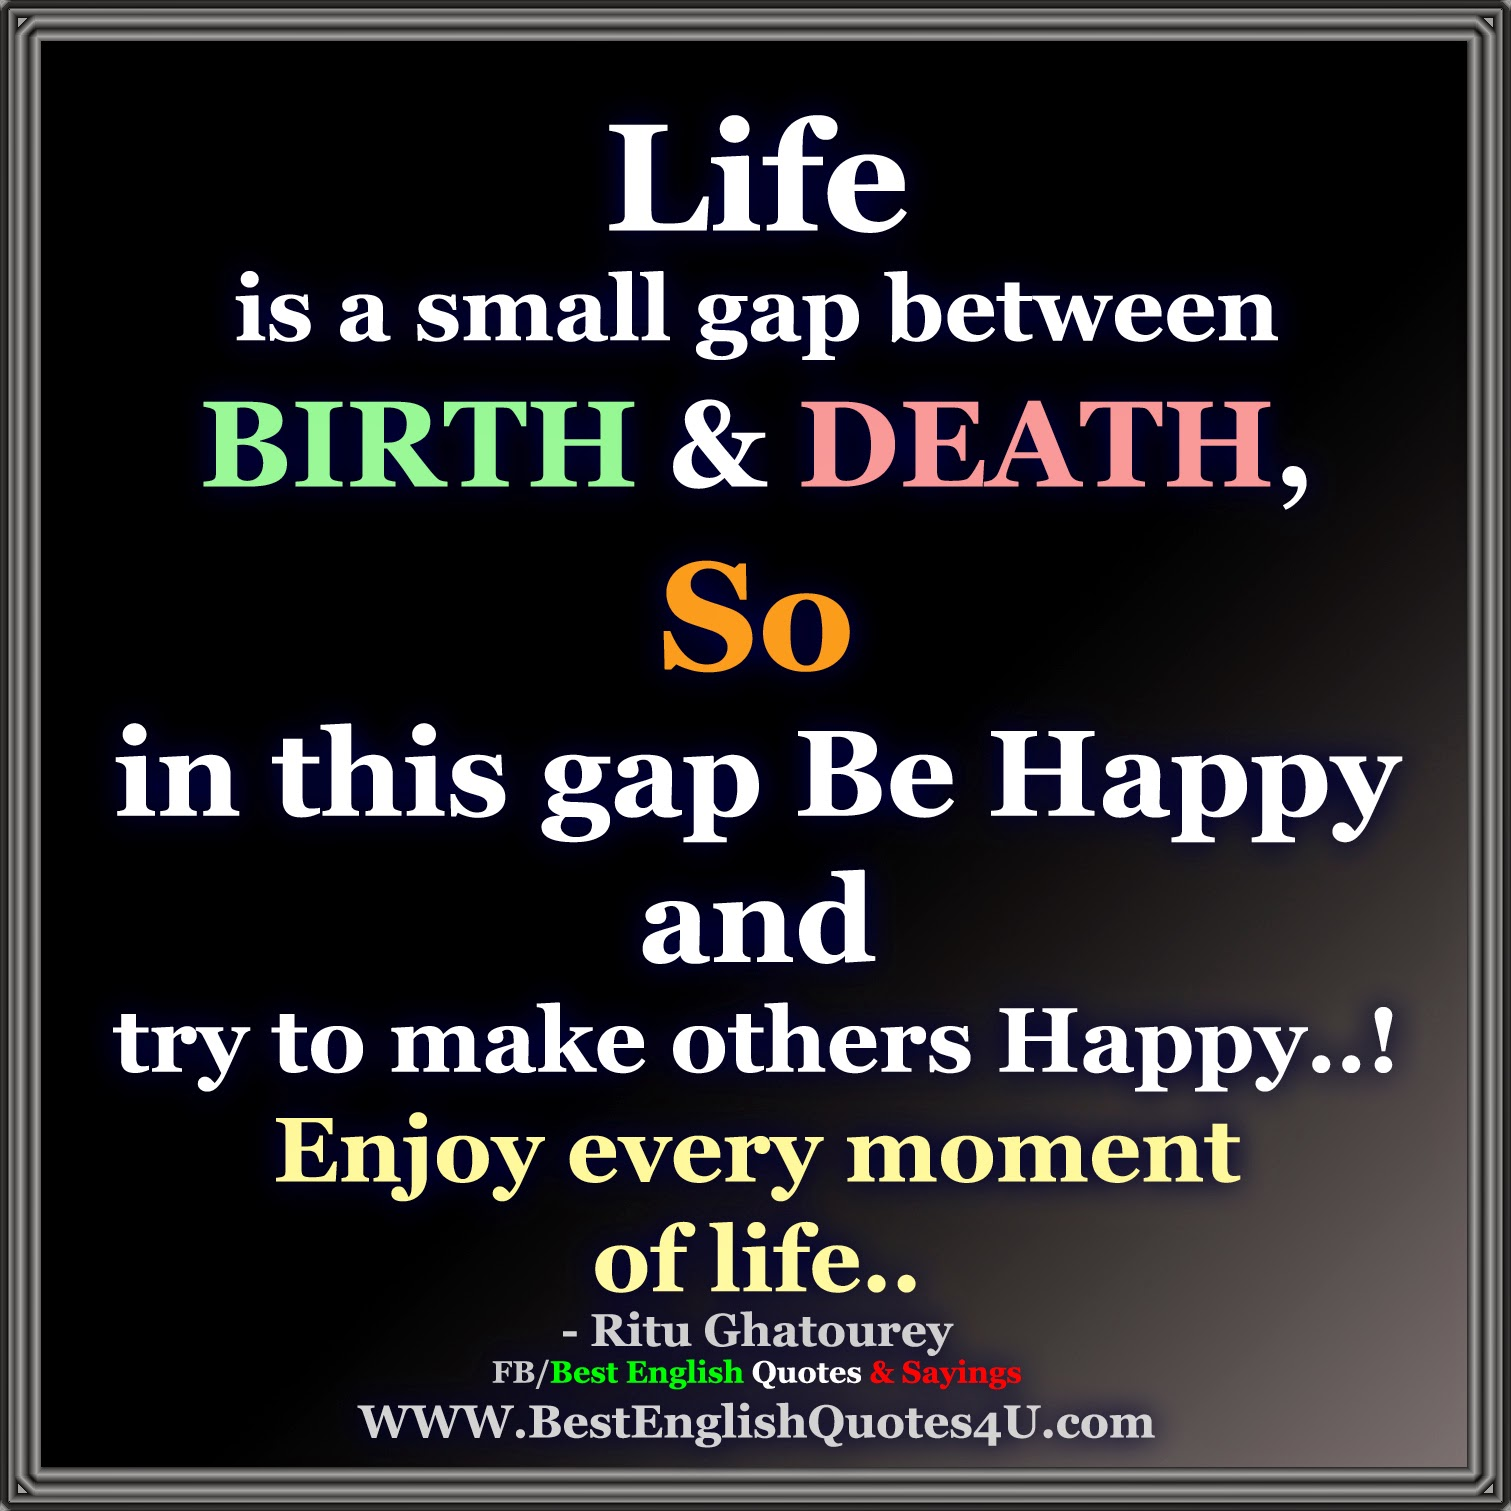 Life Is A Small Gap Between BIRTH & DEATH...